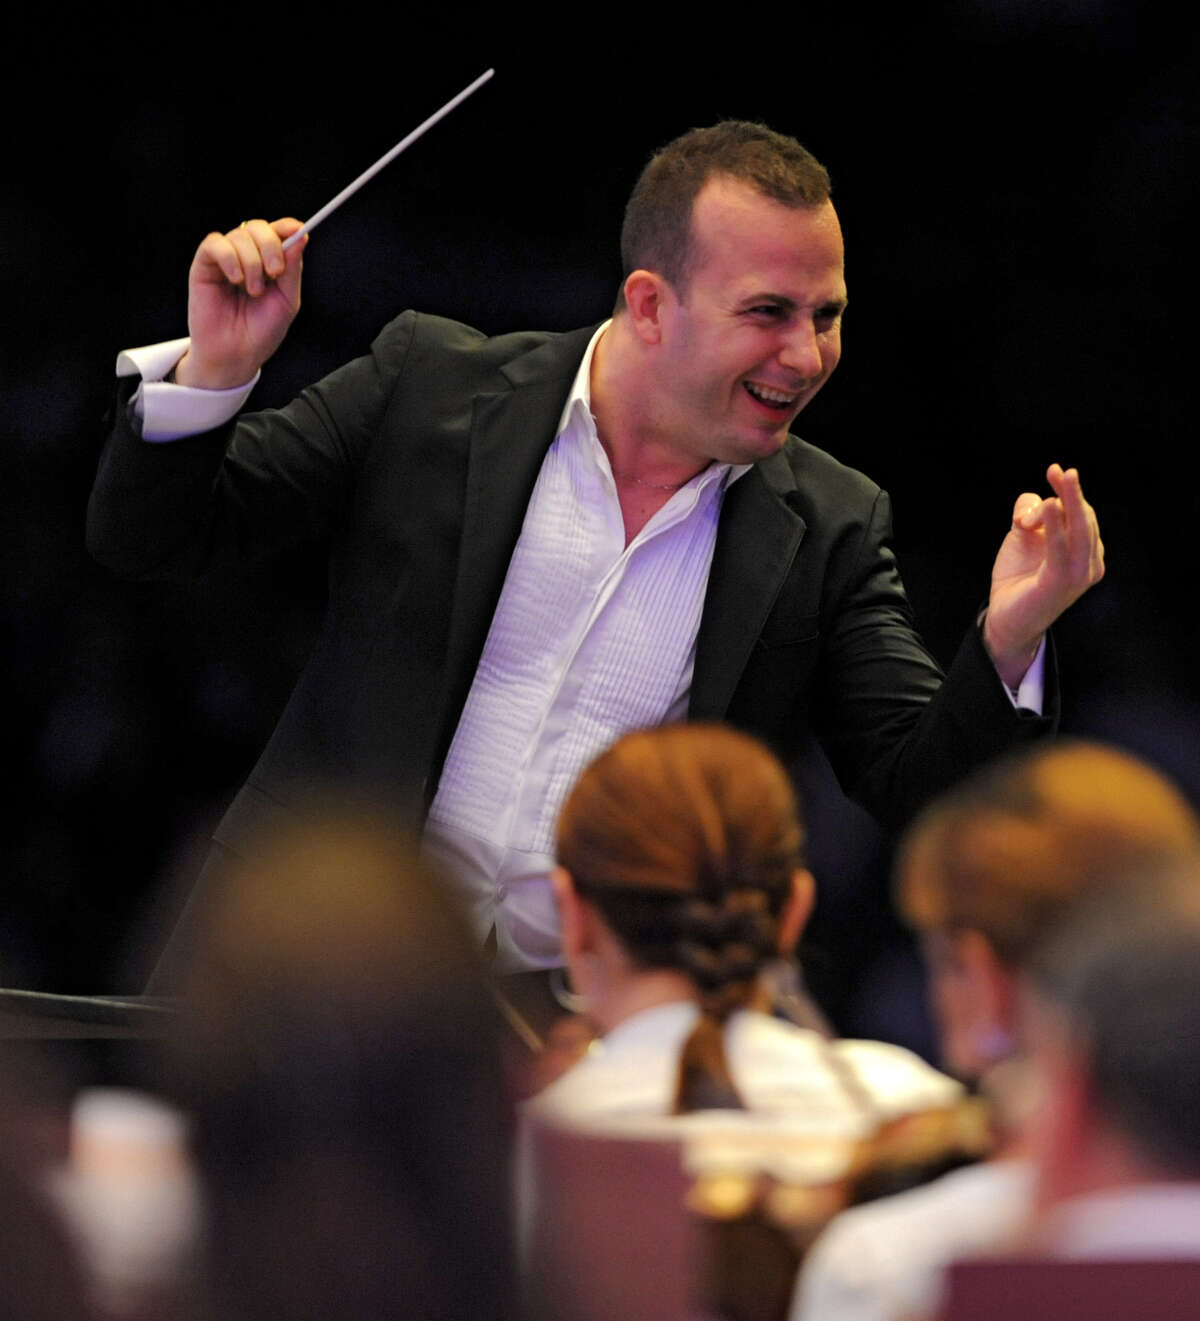 Music director Yannick Nezet-Seguin conducts the Philadelphia Orchestra at Saratoga Performing Arts Center Wednesday, Aug. 8, 2012 in Saratoga Springs, N.Y. This is Yannick Nezet-Seguin's first performance at SPAC. (Lori Van Buren / Times Union)